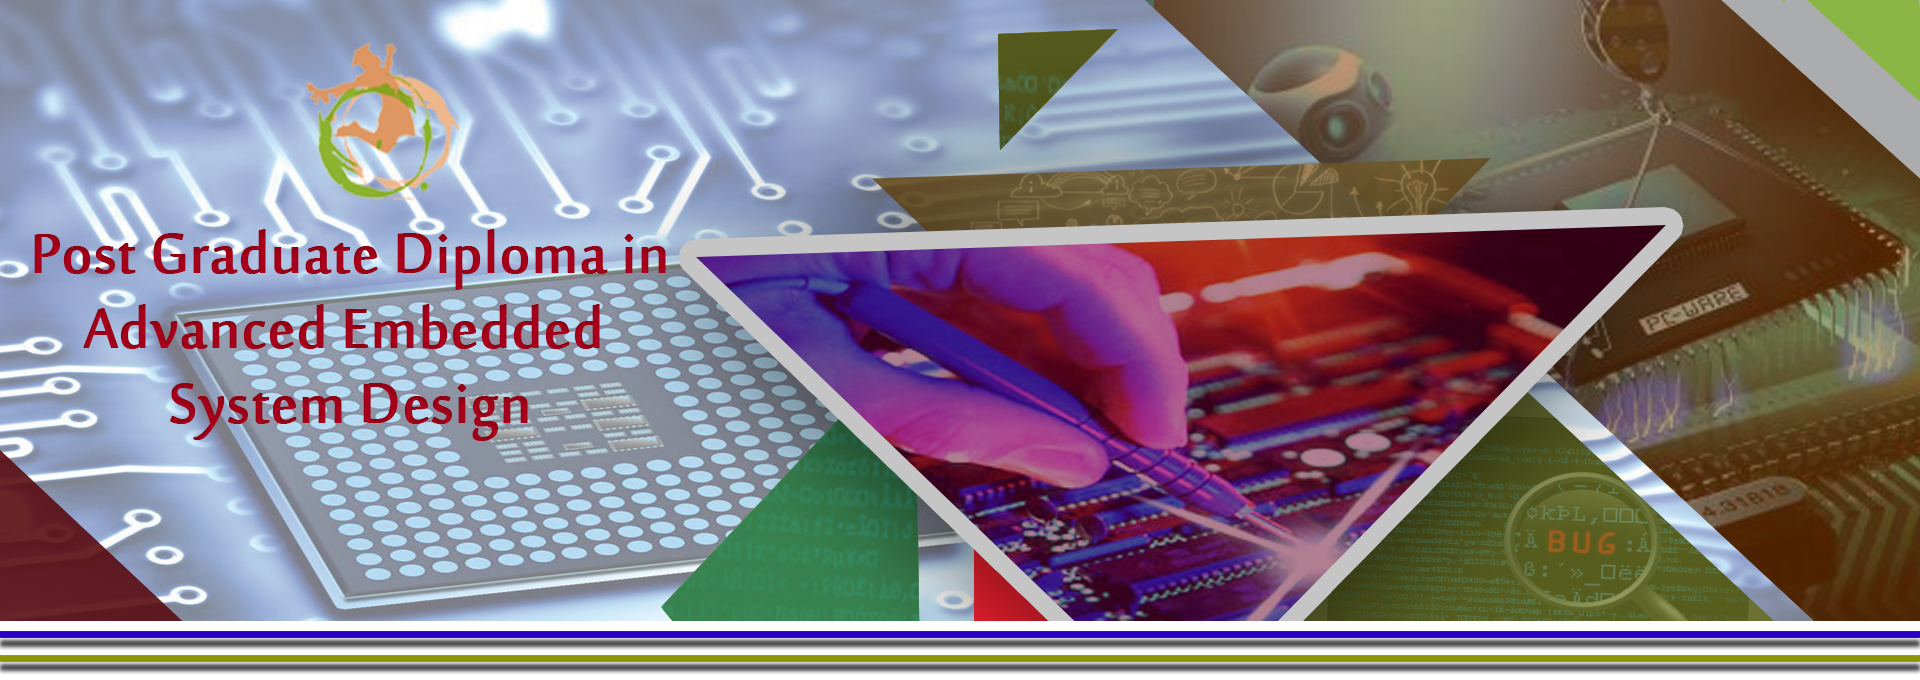 Post Graduate  Diploma in Advanced Embedded System Design